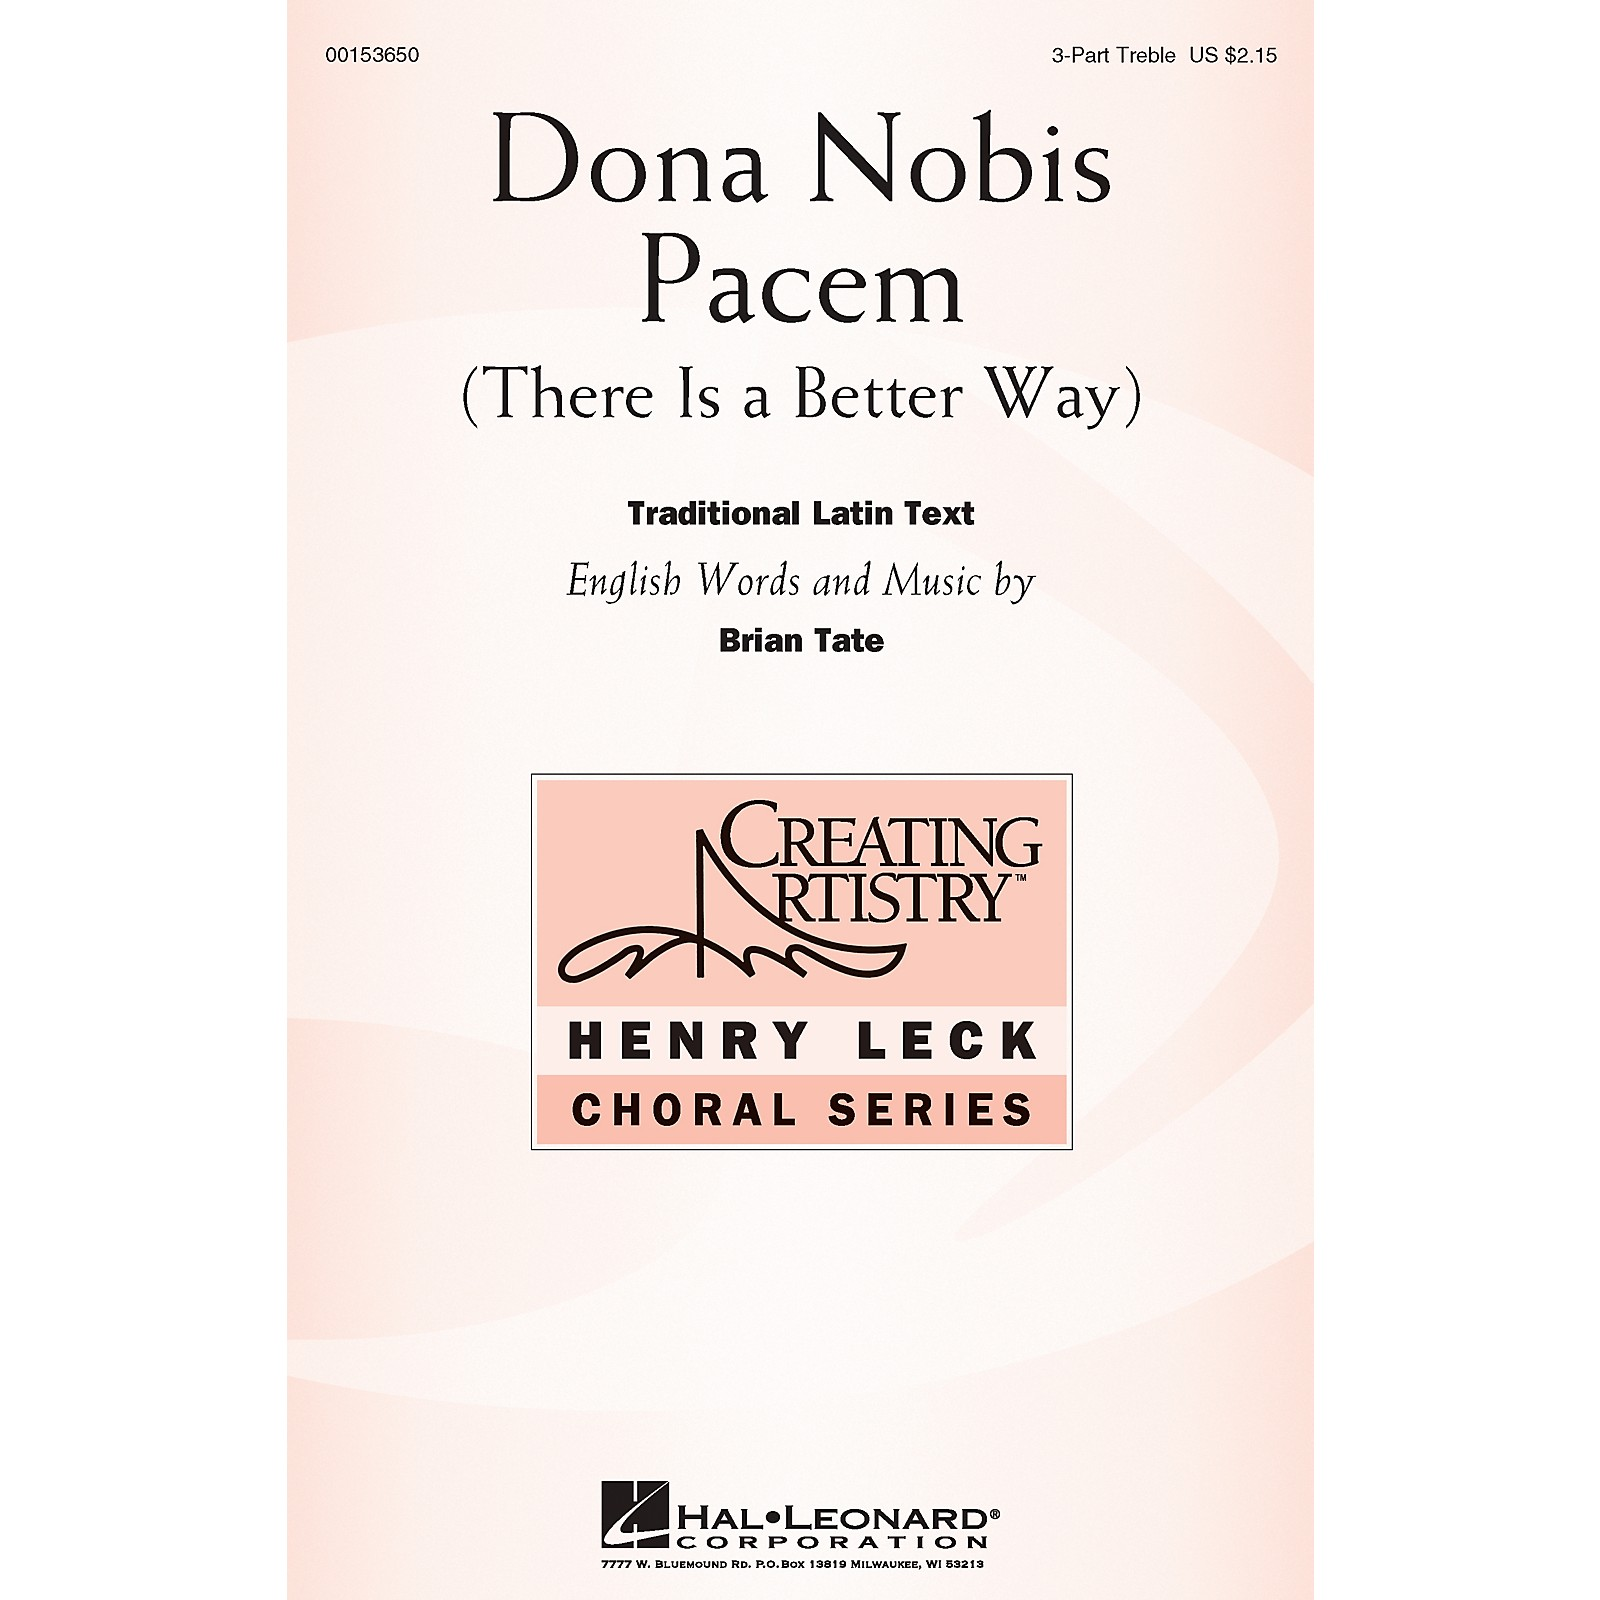 Hal Leonard Dona Nobis Pacem (There Is a Better Way) 3 Part Treble composed by Brian Tate